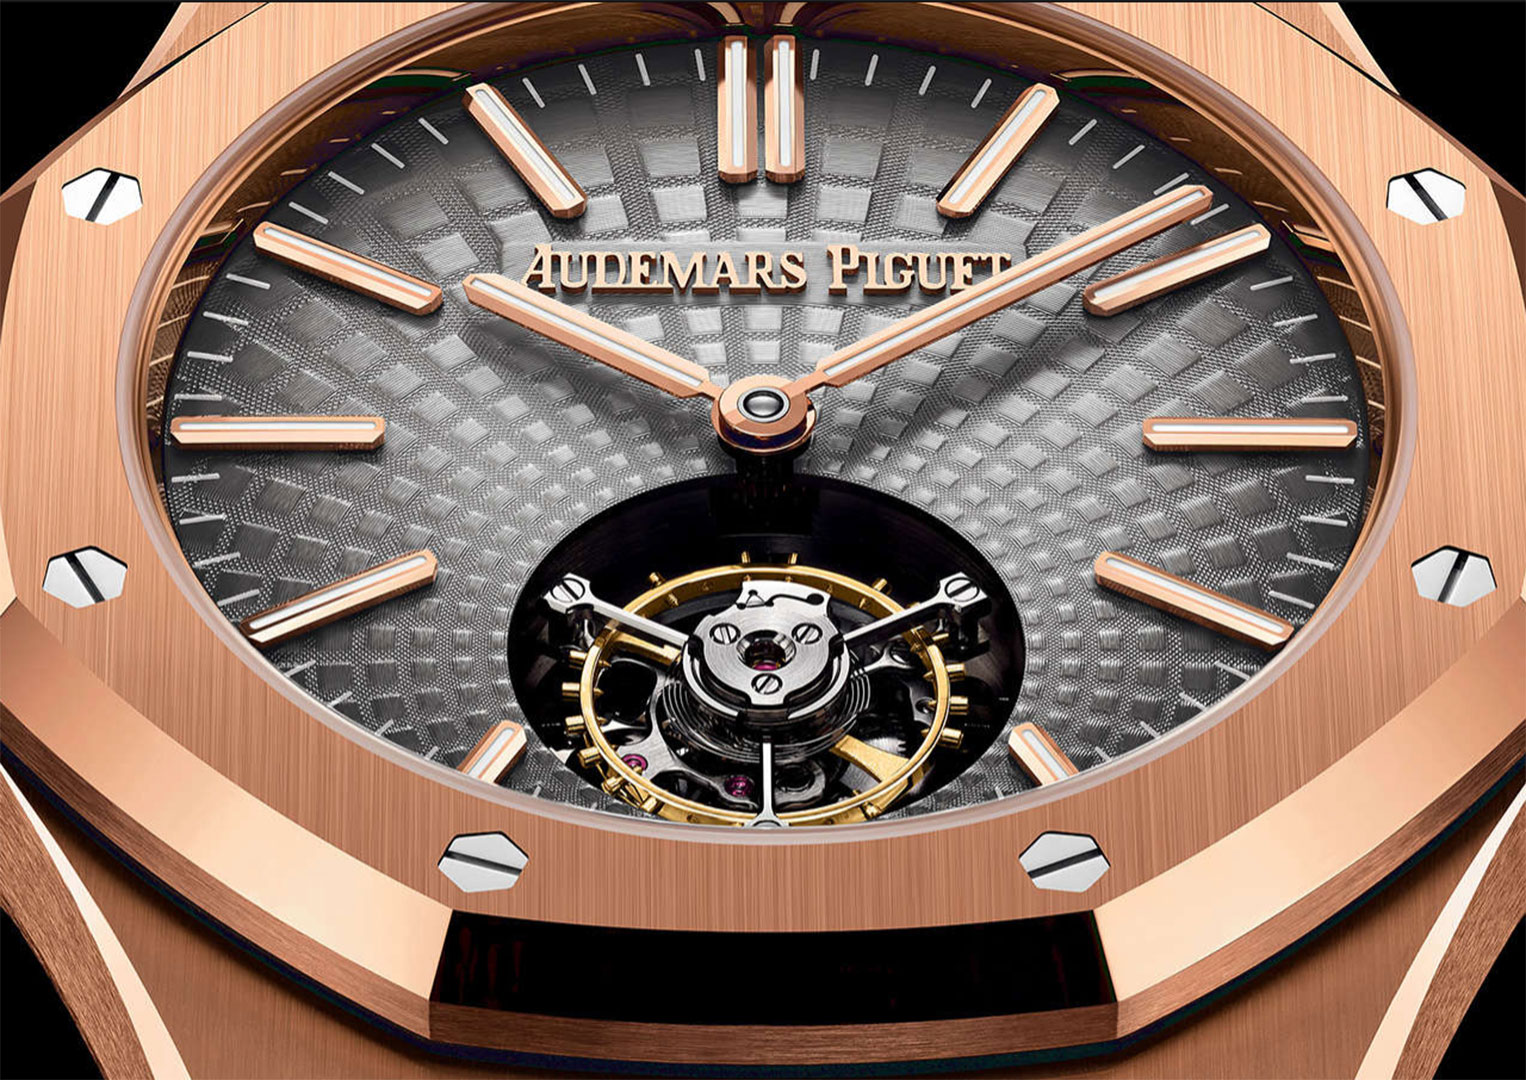 A flying tourbillon is a tourbillon only supported on one side